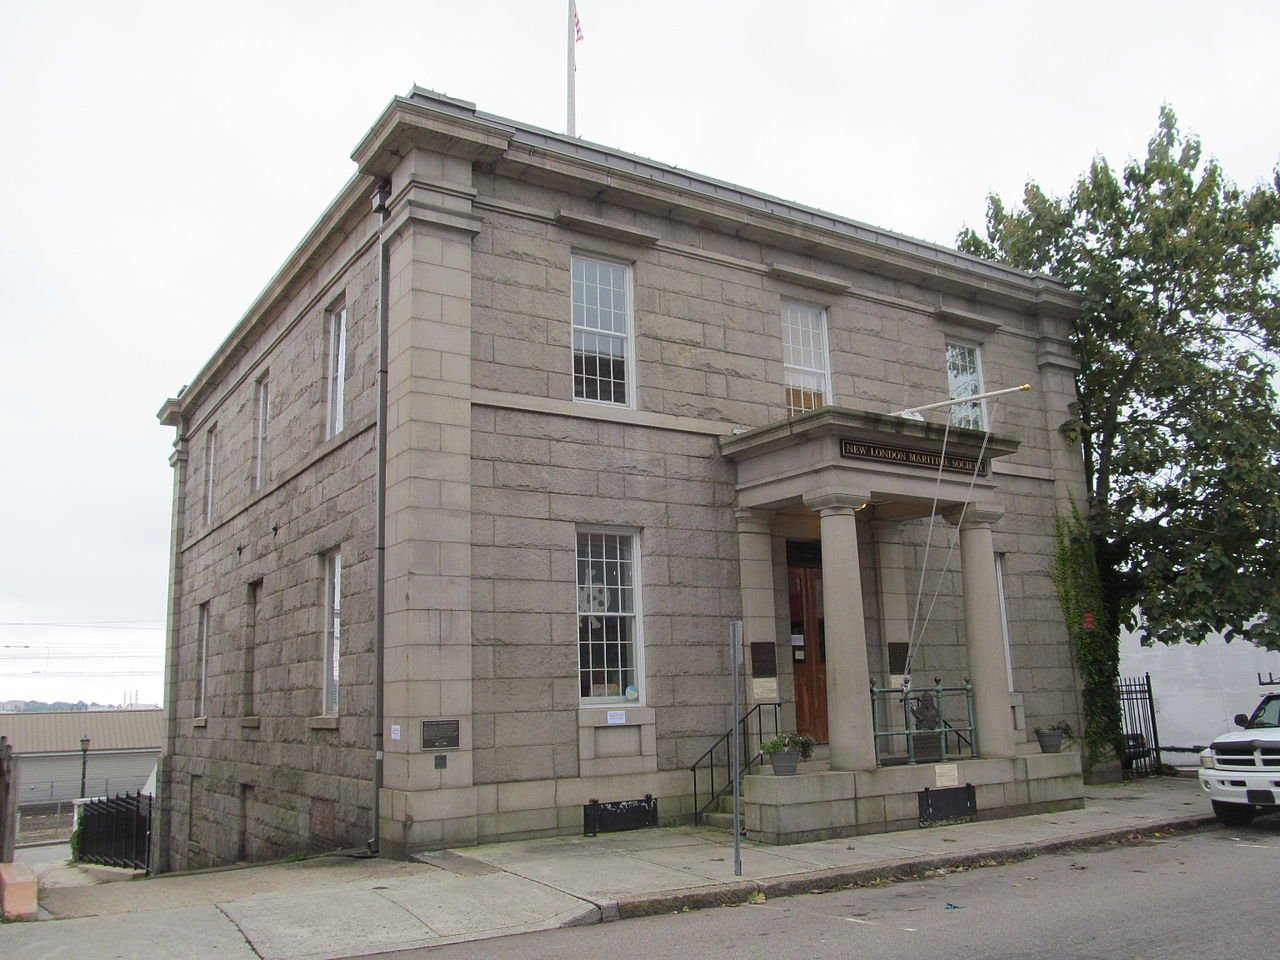 The historic New London Custom House was built in 1835 and is now the headquarters of the New London Maritime Society and the location of the Custom House Maritime Museum.